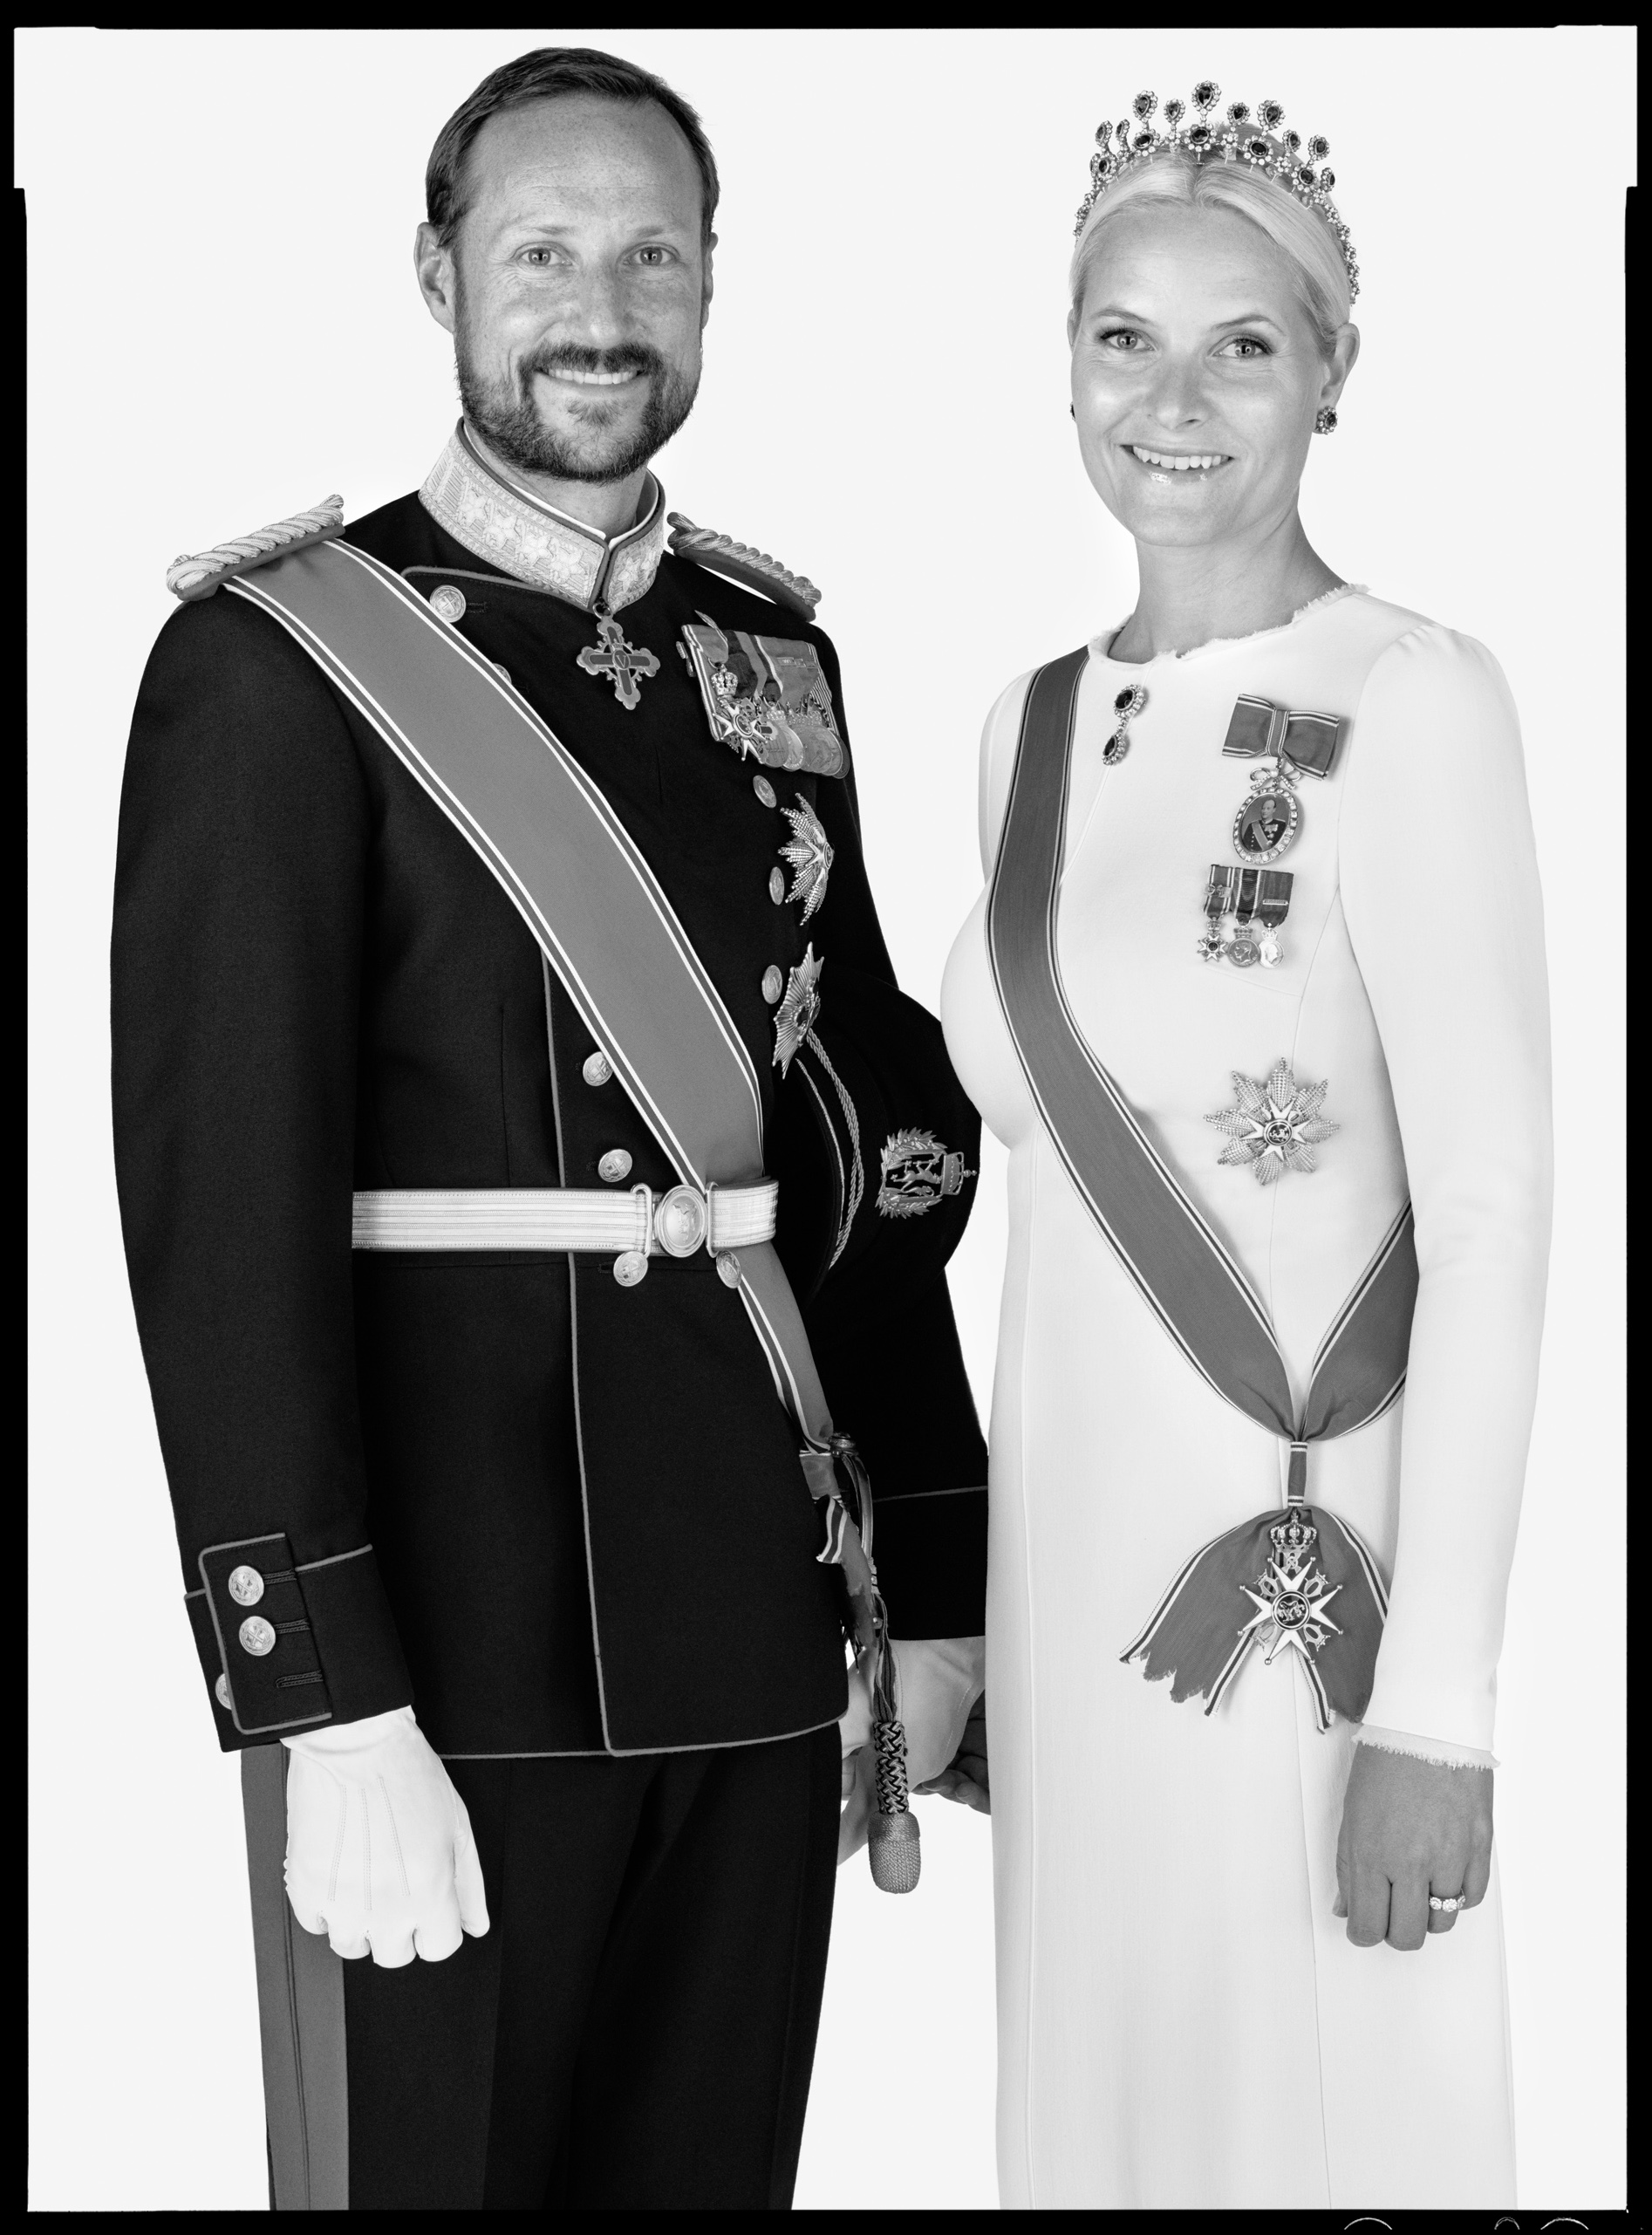 Their Royal Highnesses The Crown Prince and Crown Princess